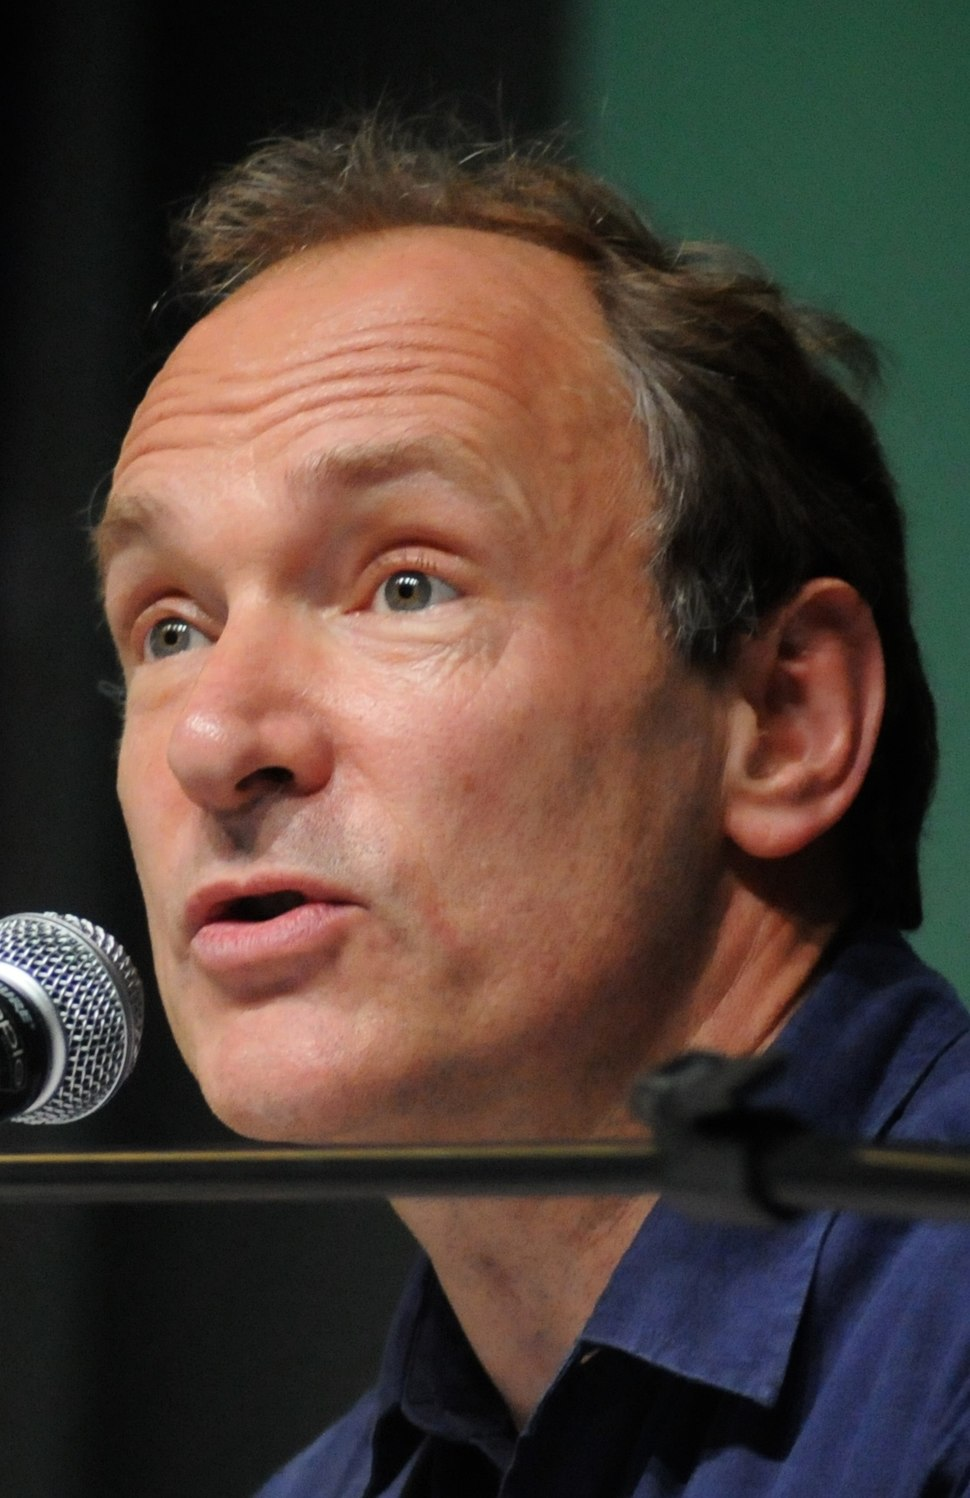 Tim Berners-Lee CP 2 head crop